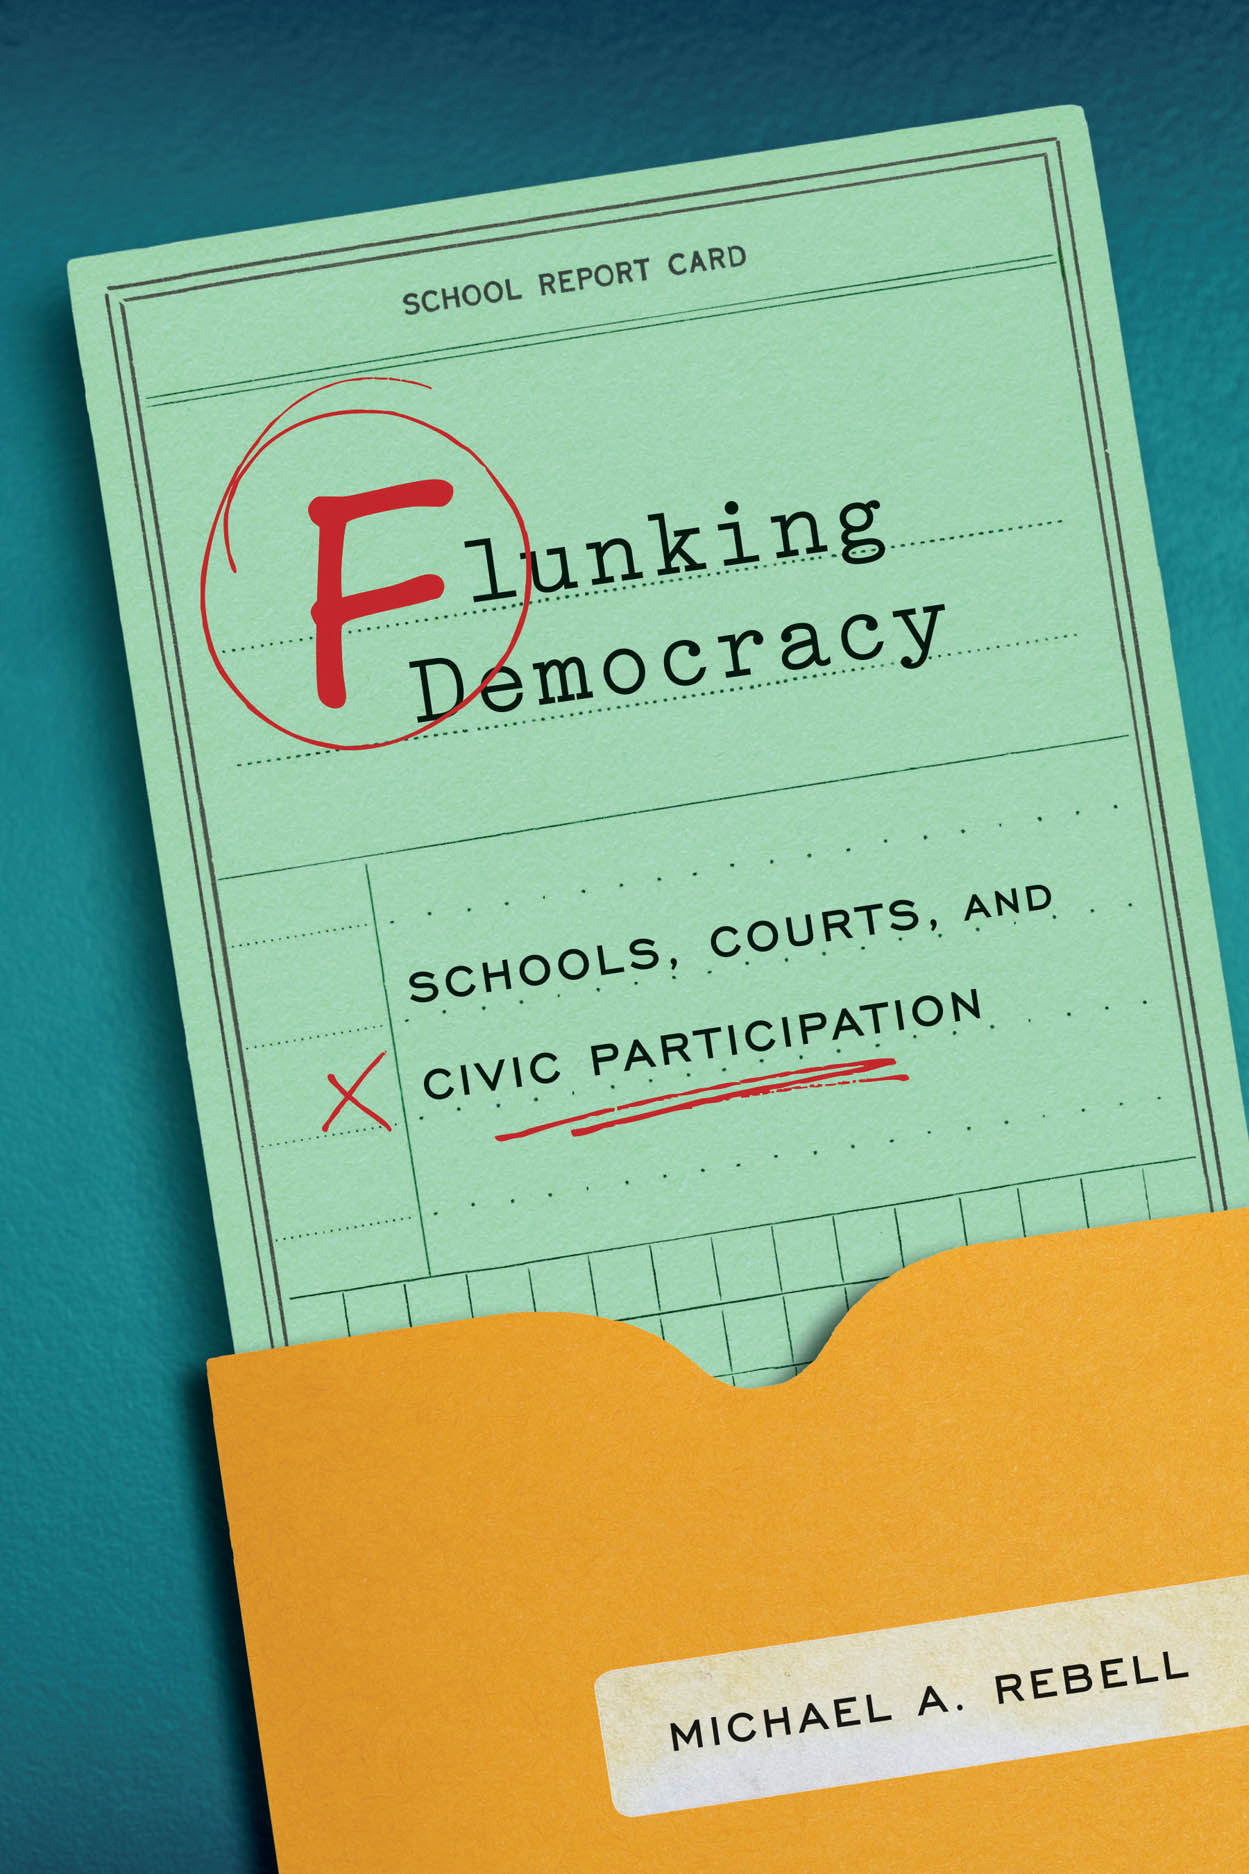 Flunking Democracy